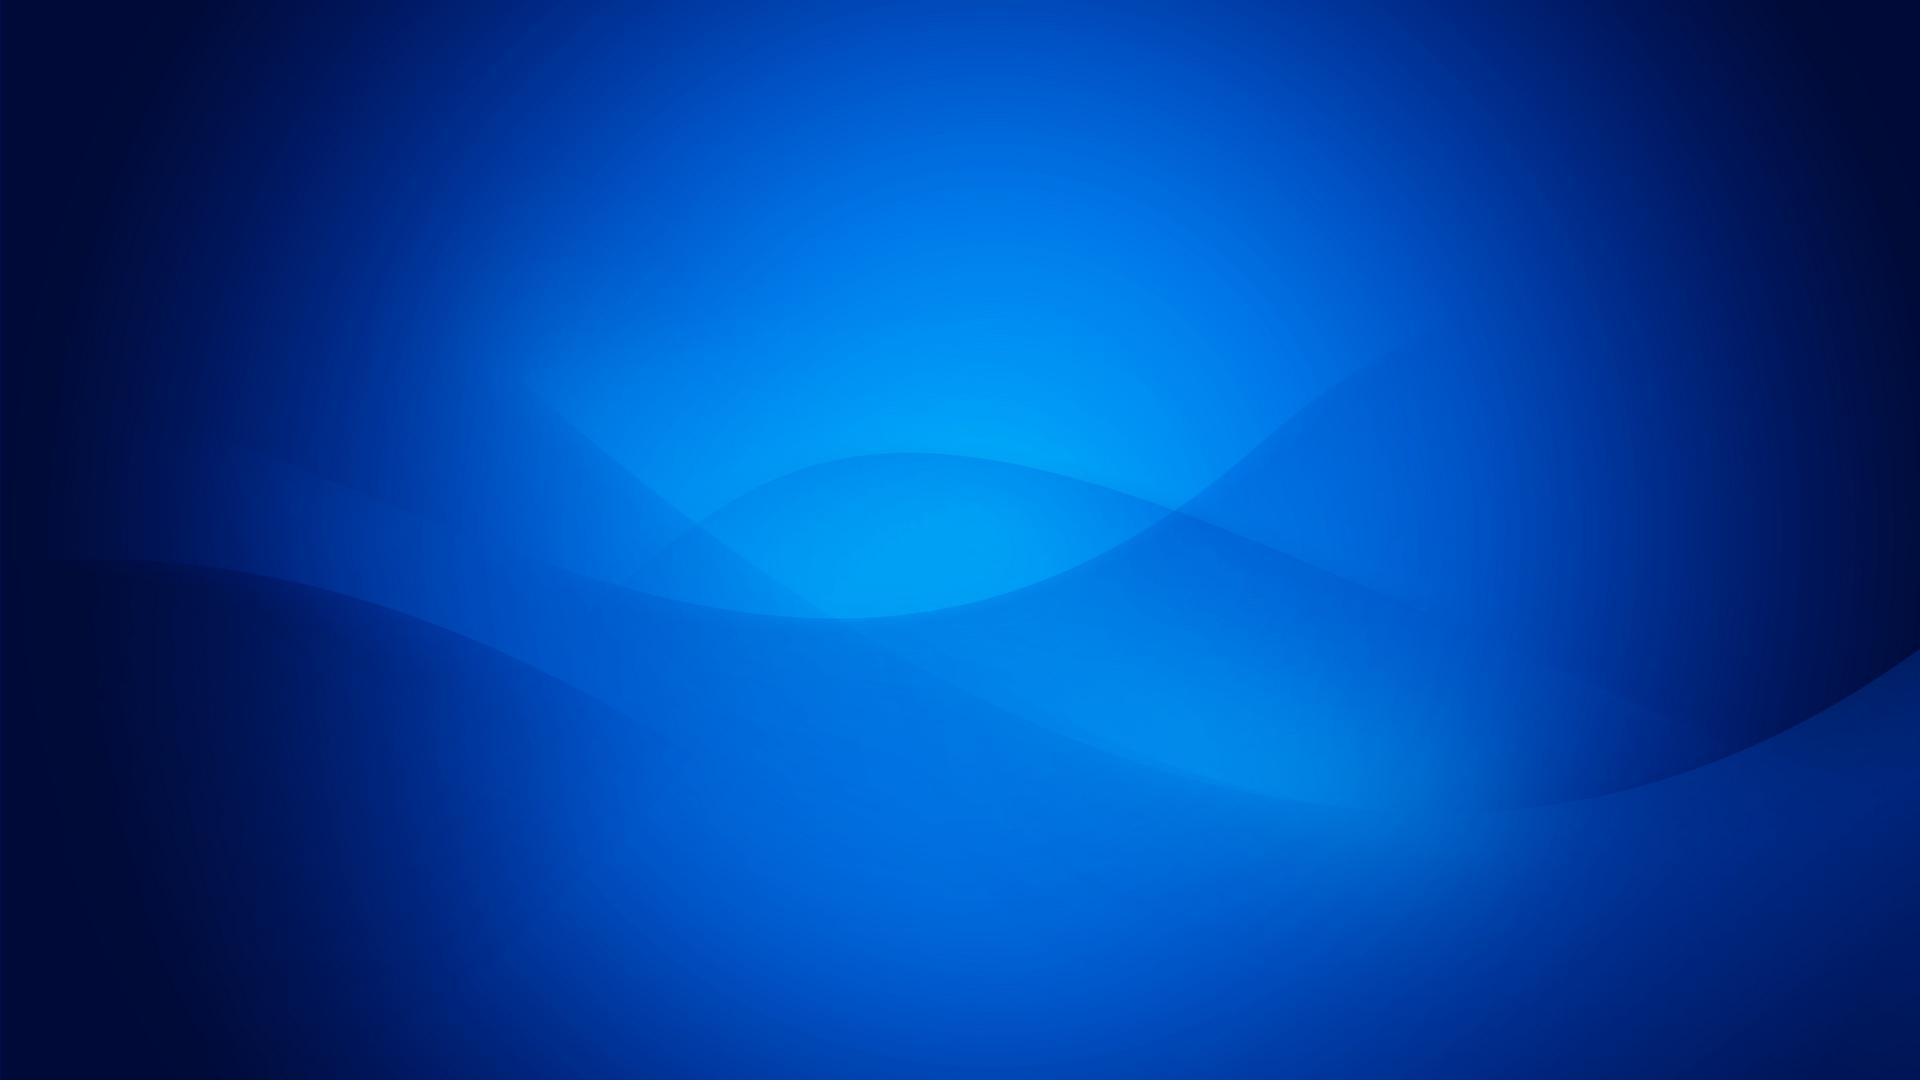 wallpaper hd dlwallhd blue - photo #34